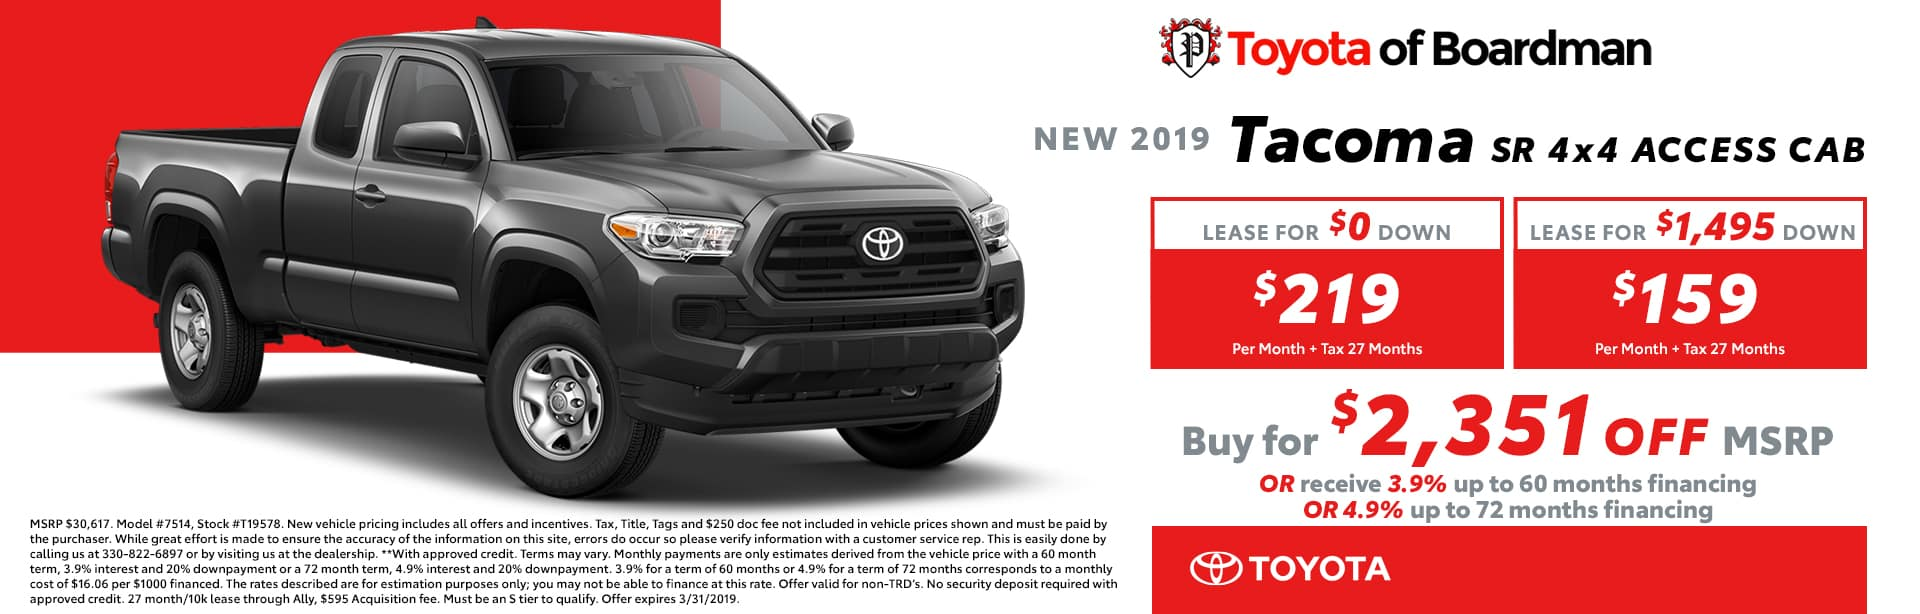 March Special on the 2019 Toyota Tacoma